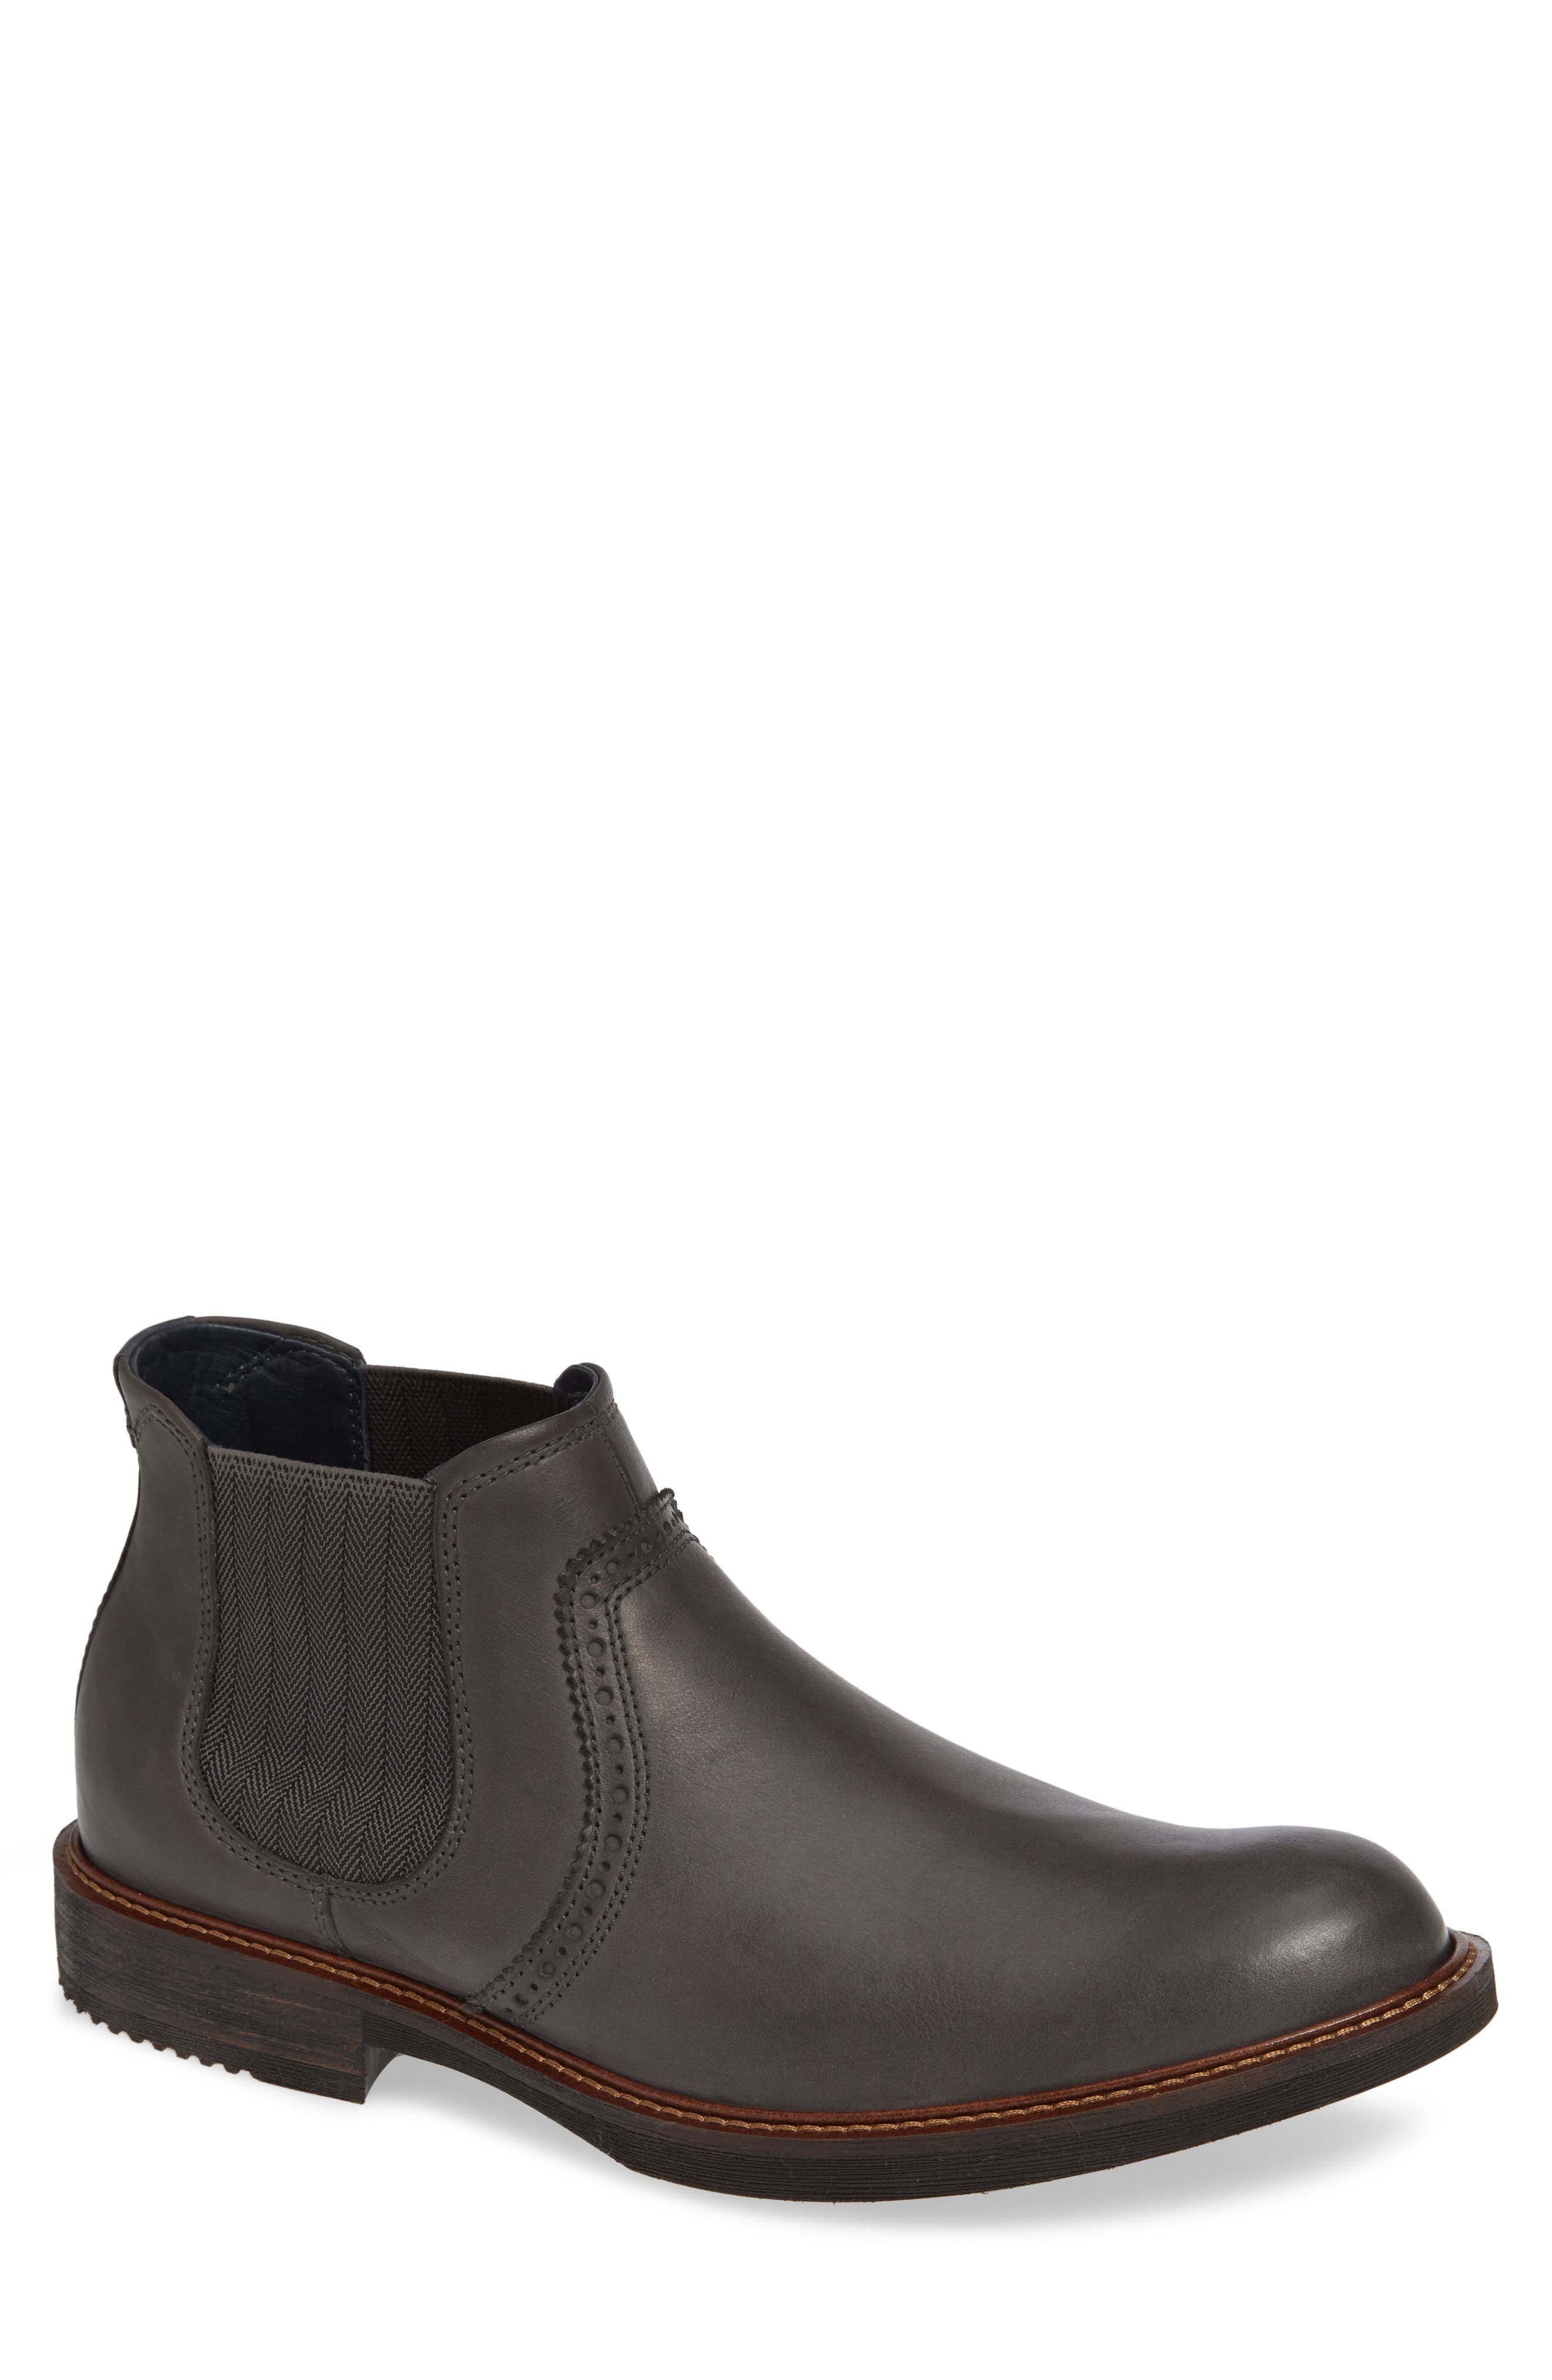 Kenton Chelsea Boot,                         Main,                         color, MOONLESS LEATHER